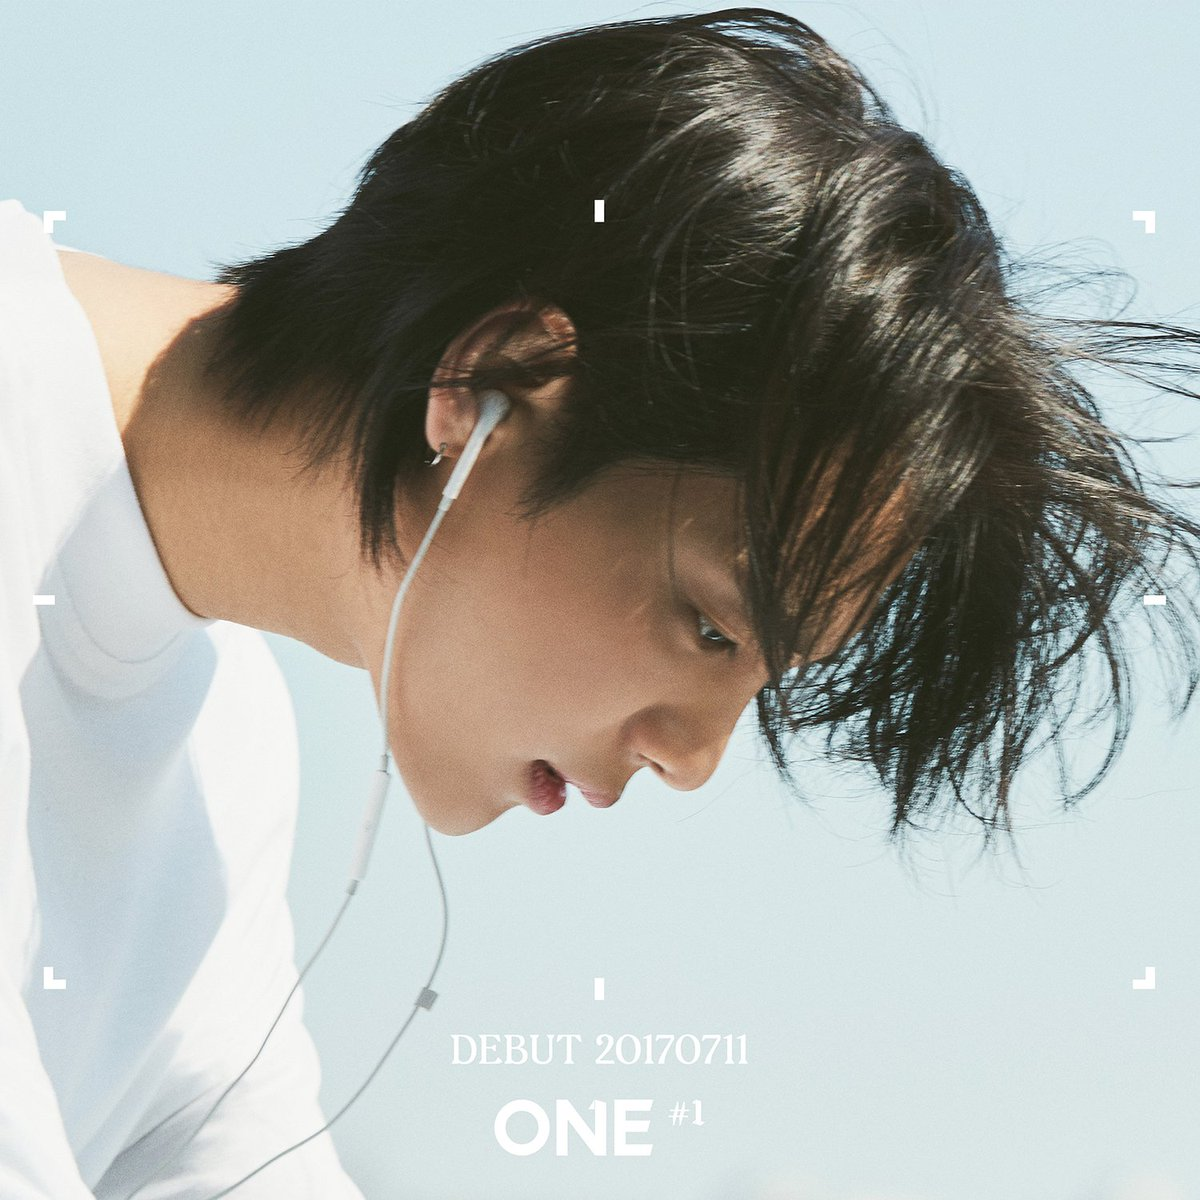 [ONE - DEBUT TEASER] originally posted by https://t.co/XZQ3IOI9MY #ONE #1 #원 #정제원 #DEBUT #20170711 #TEASER #YG